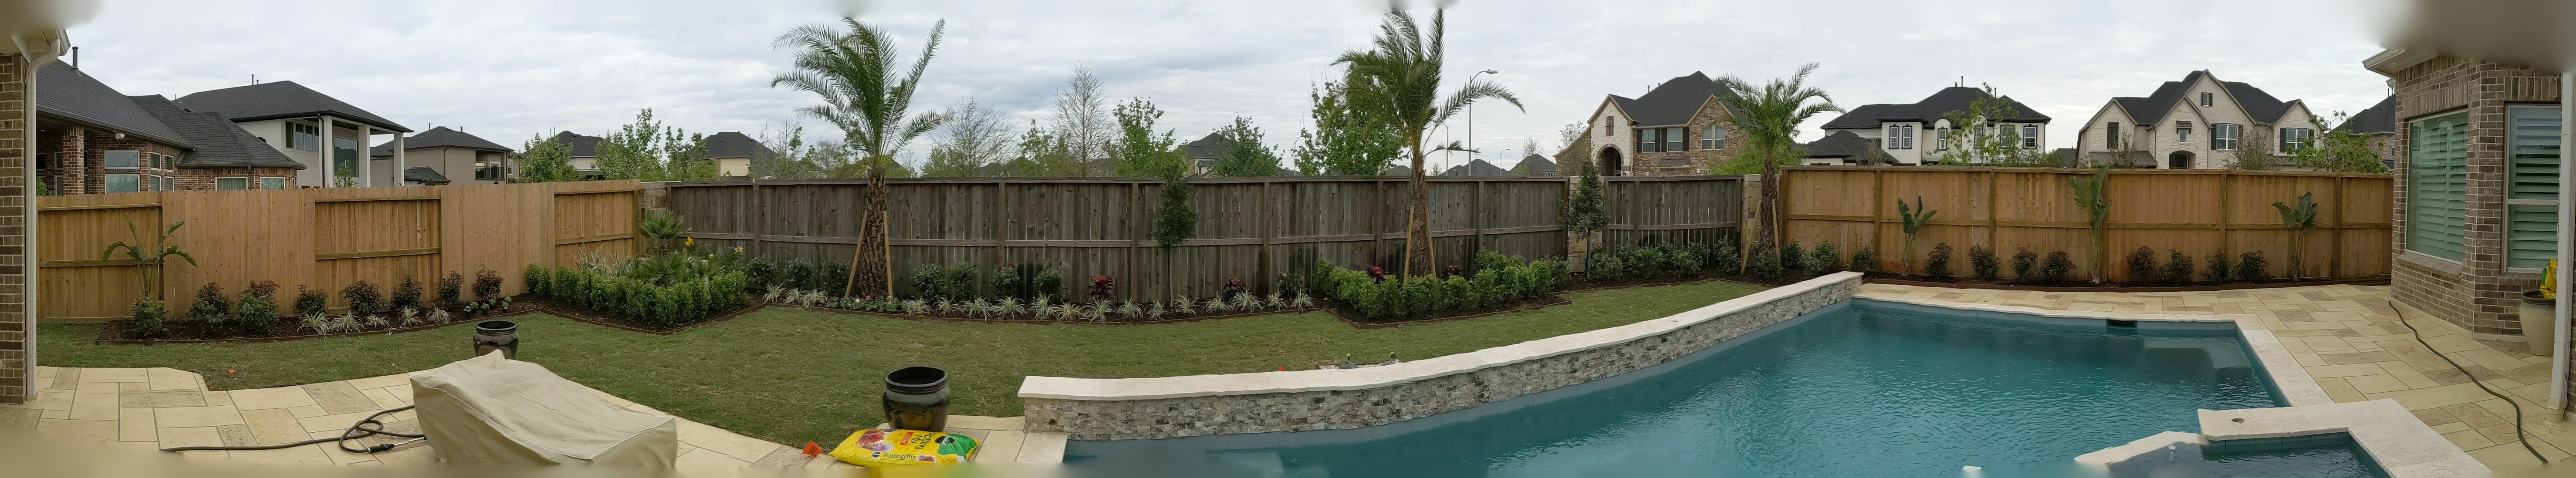 pool-landscaping_22